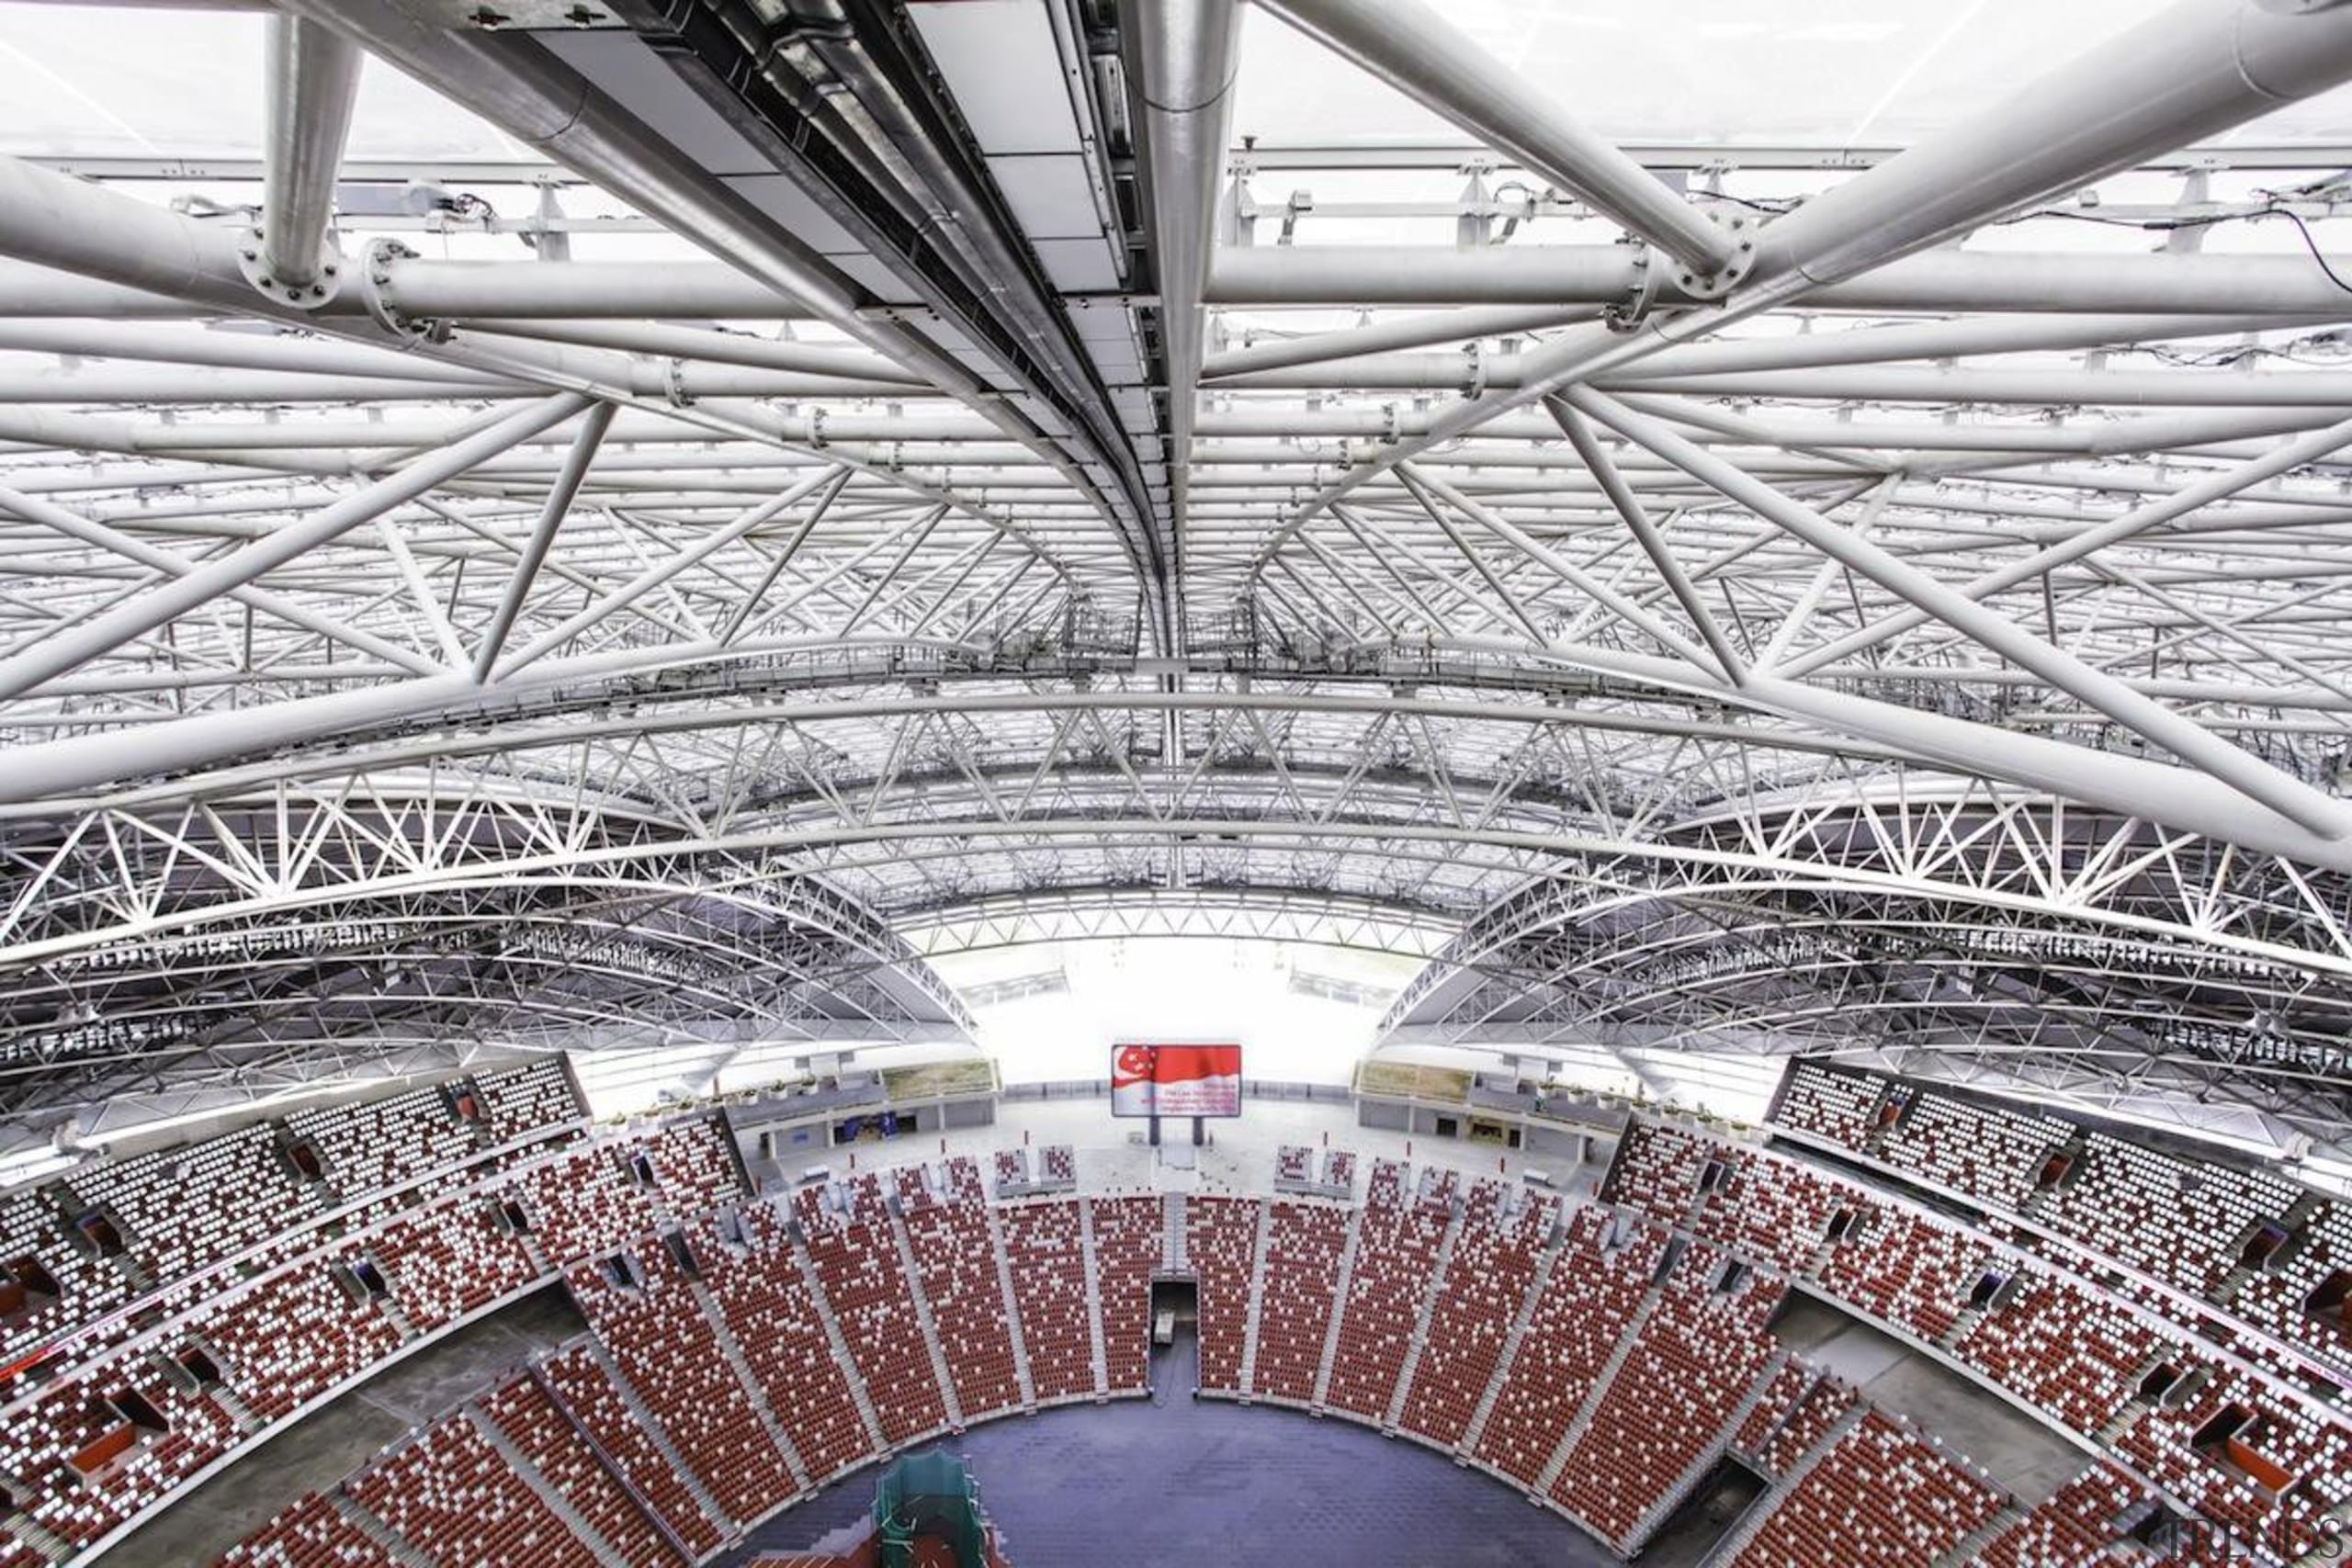 Singapore-based engineering company MHE-Demag provided the roof moving architecture, arena, building, daylighting, line, sport venue, stadium, structure, urban area, white, gray